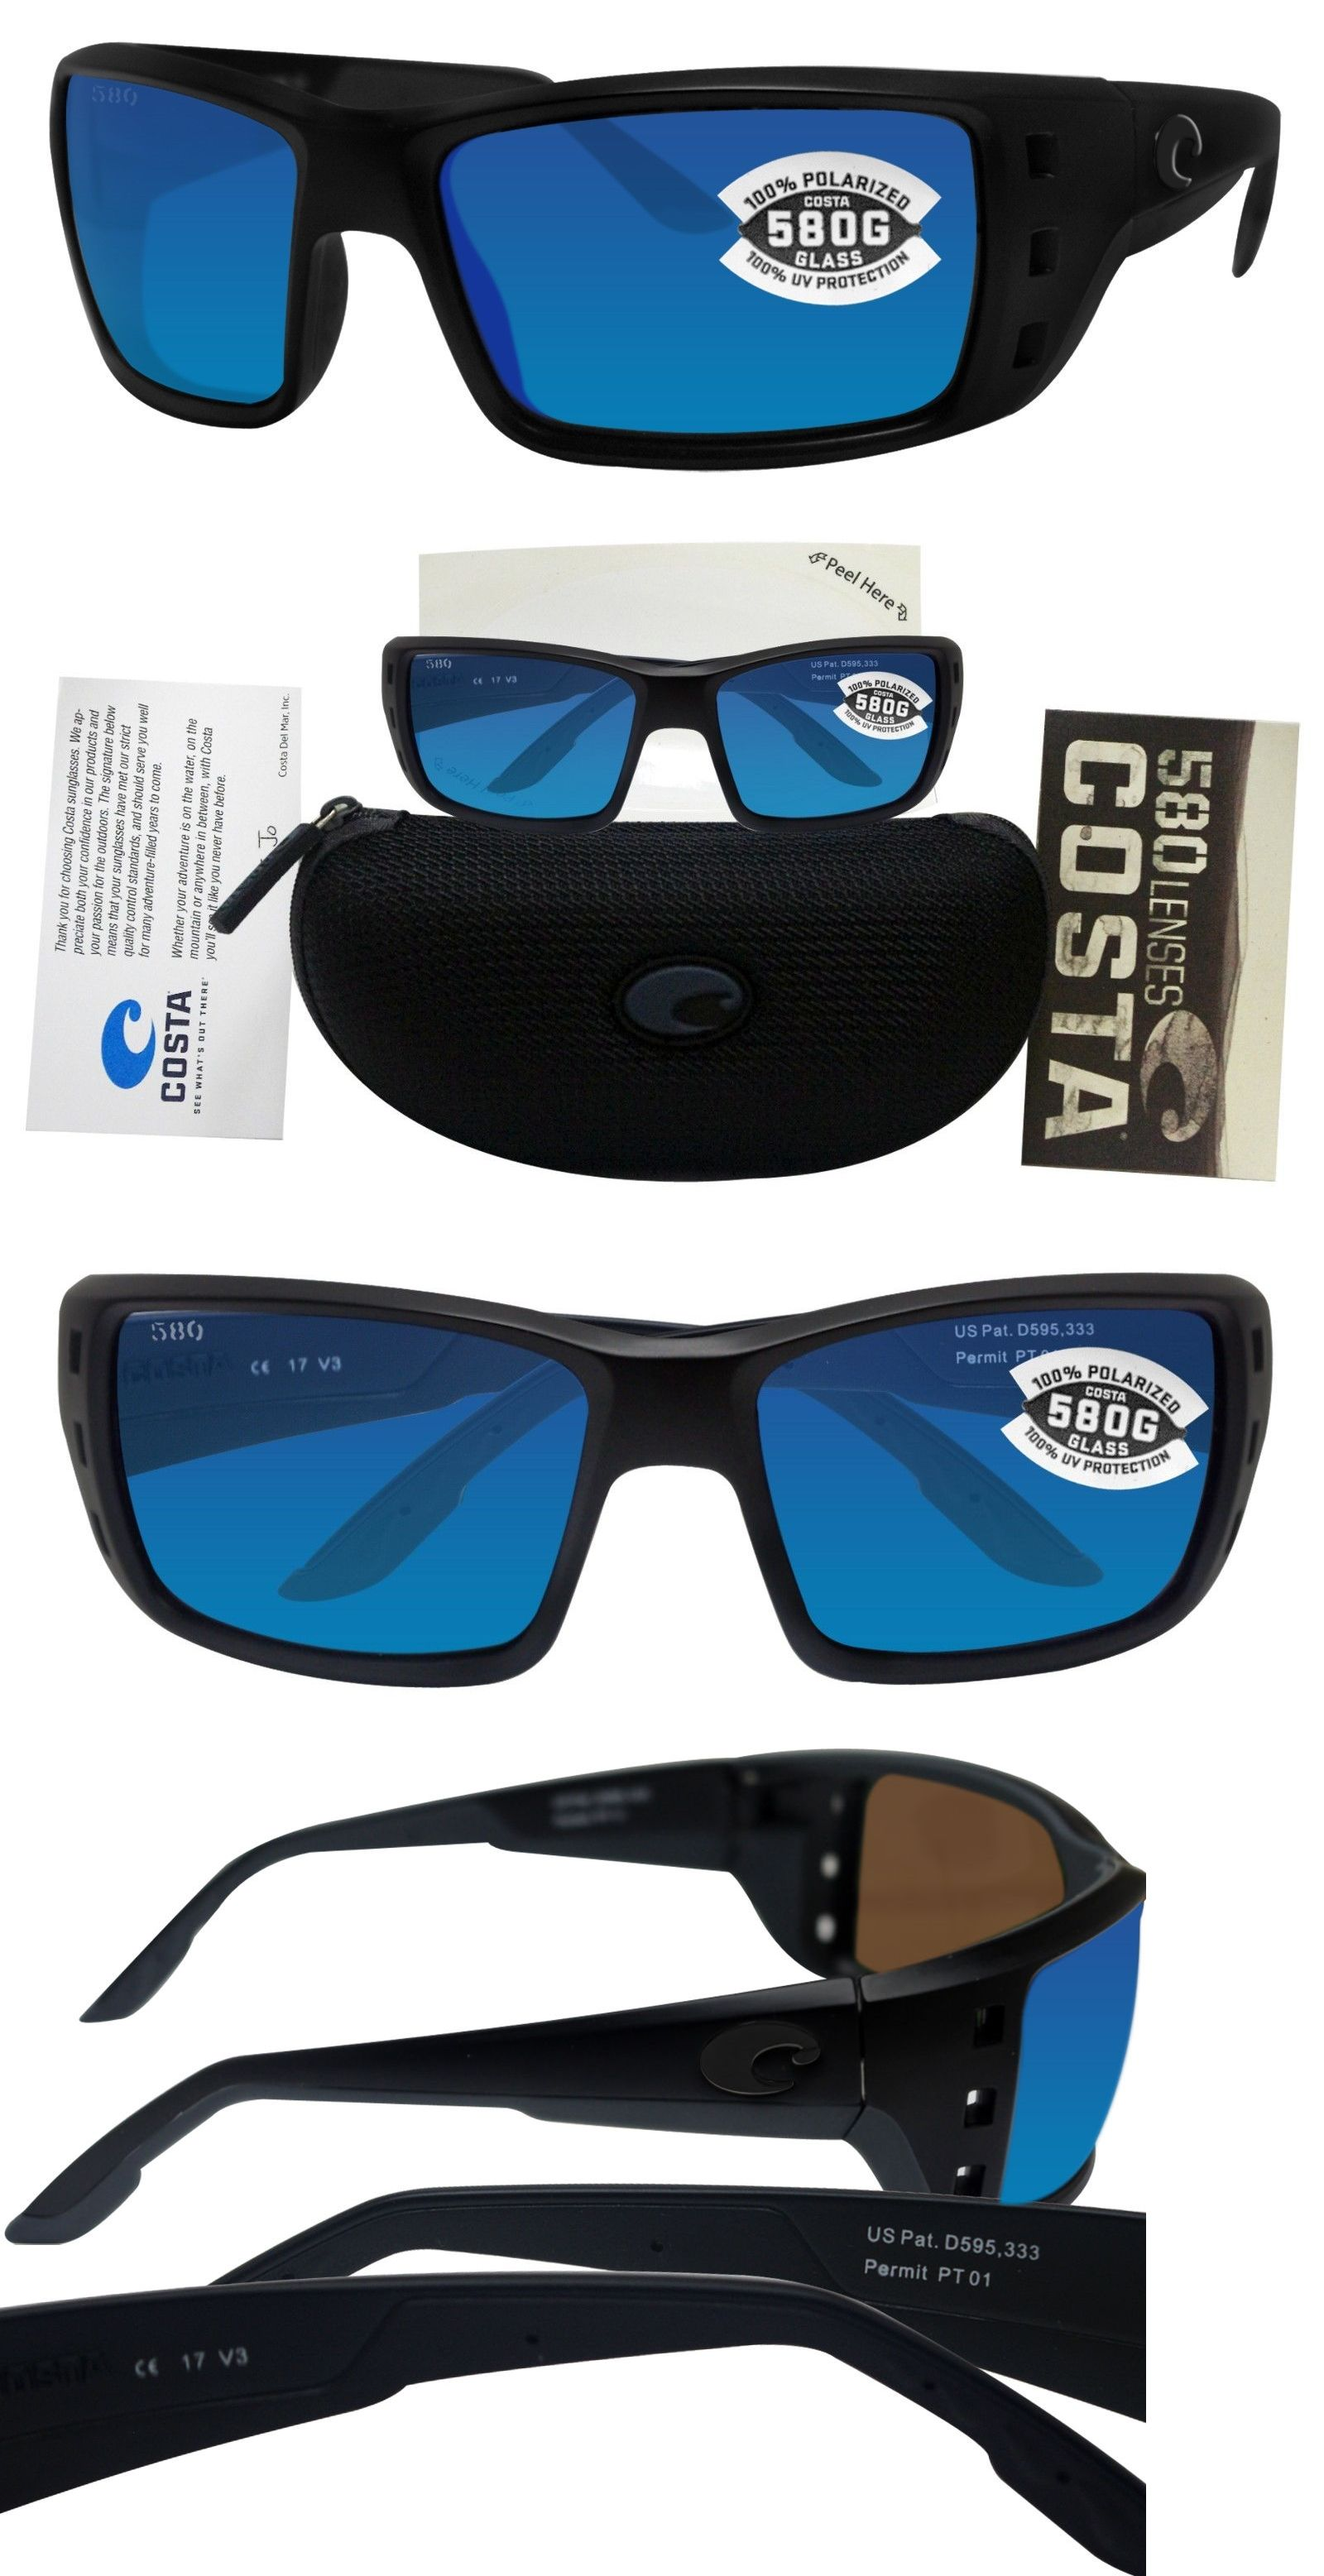 adbb31a93d Sunglasses 79720  Costa Del Mar Permit Blackout Frame Blue Mirror Polarized  Glass Lens -  BUY IT NOW ONLY   156 on eBay!